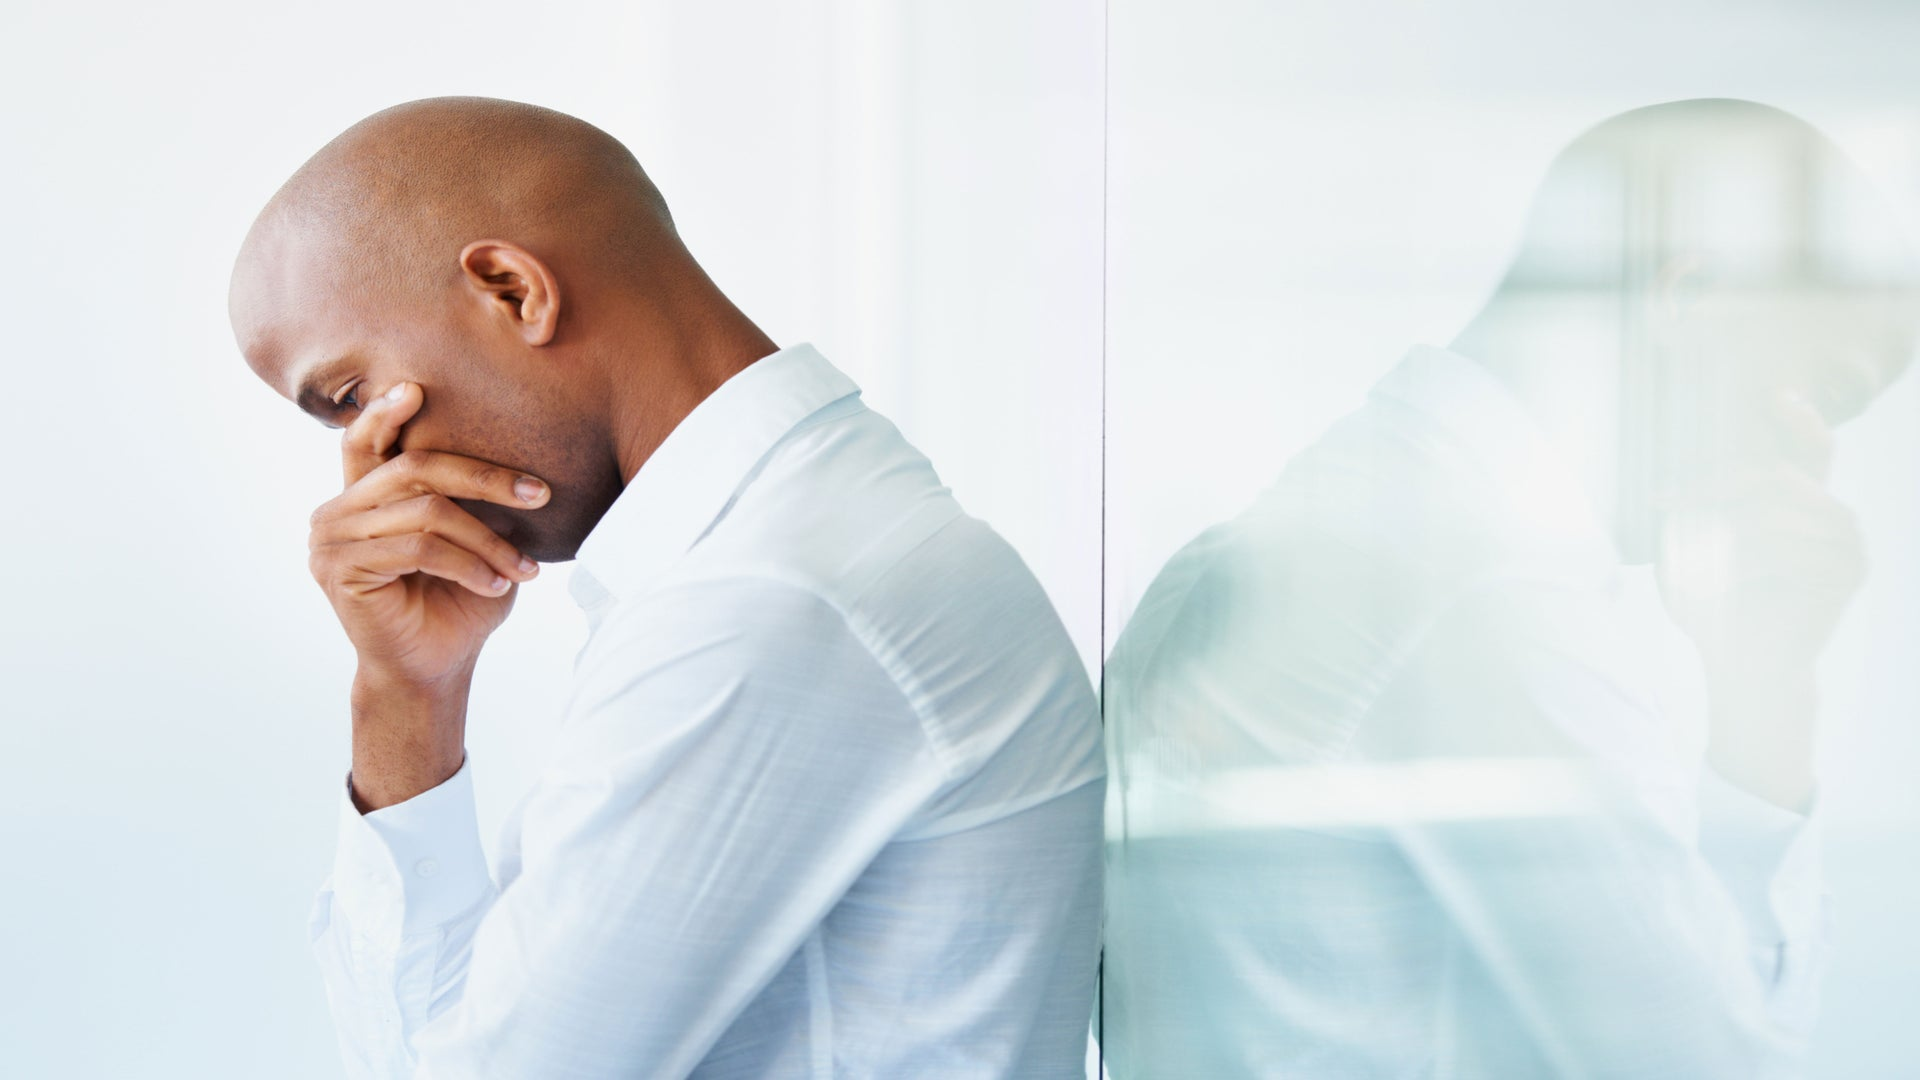 What This Study Says About Our Perception of Black Men